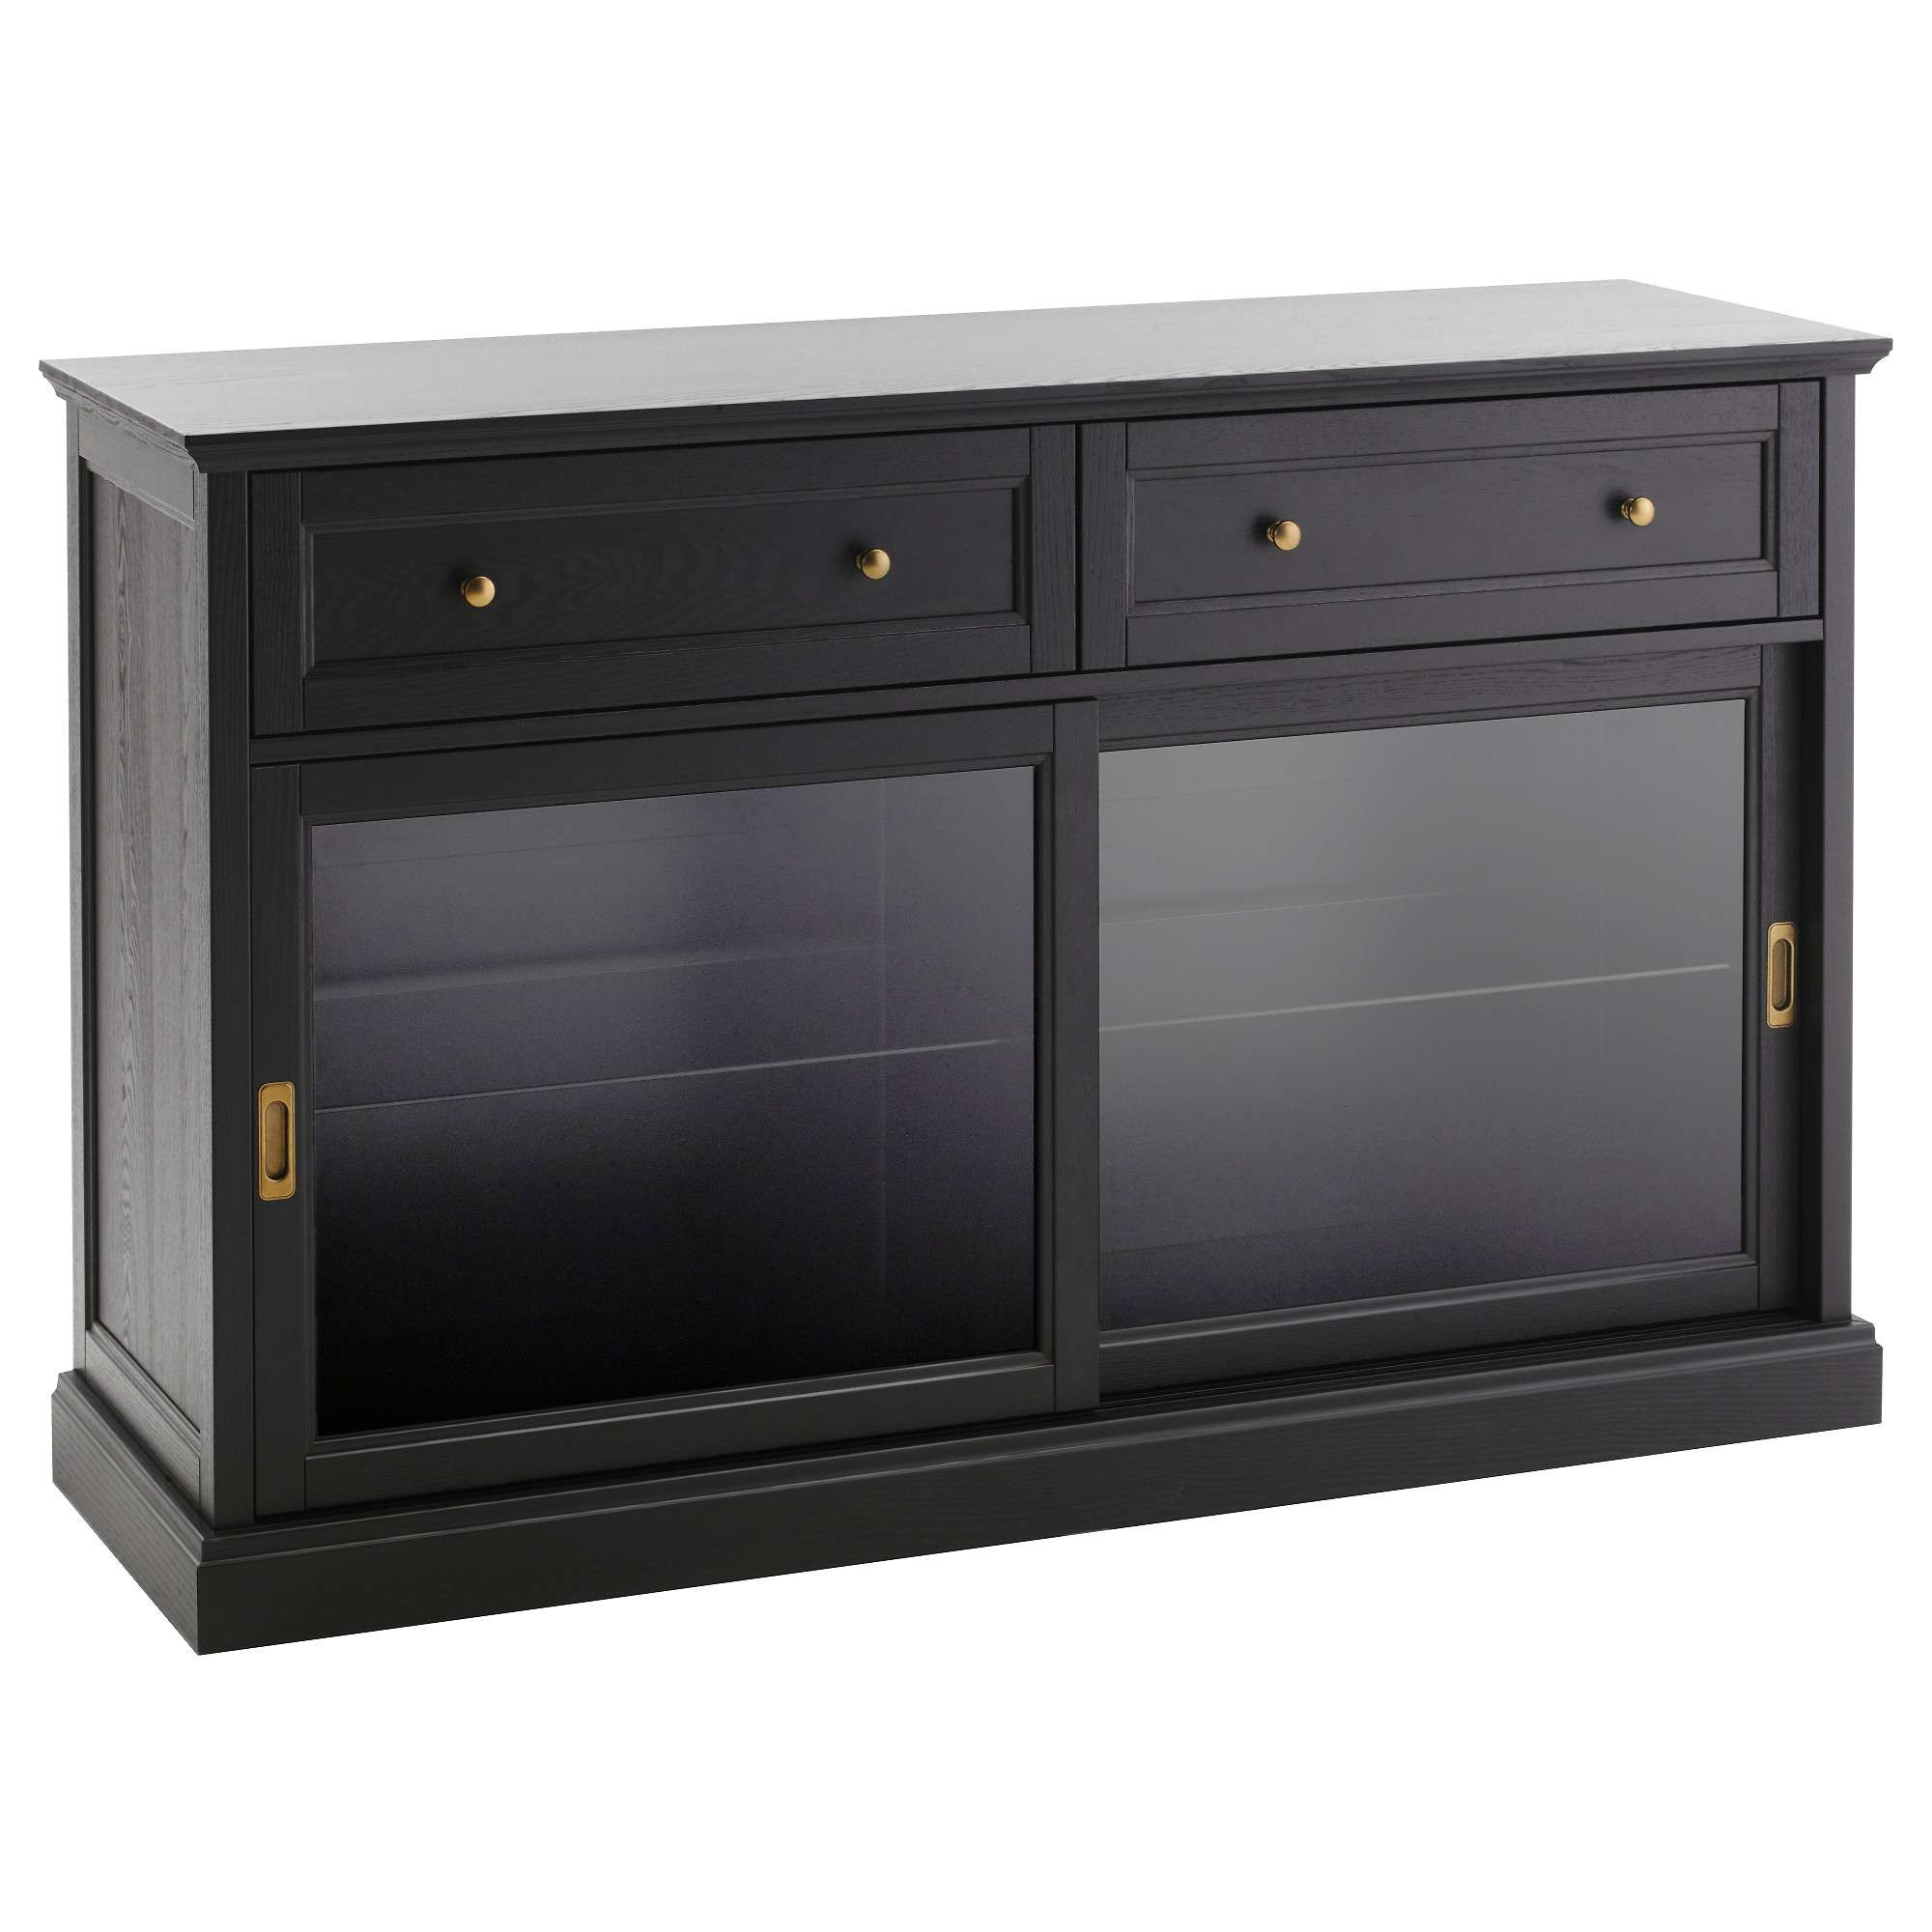 Buffet Tables & Sideboards – Ikea Within 7 Foot Sideboards (View 5 of 20)